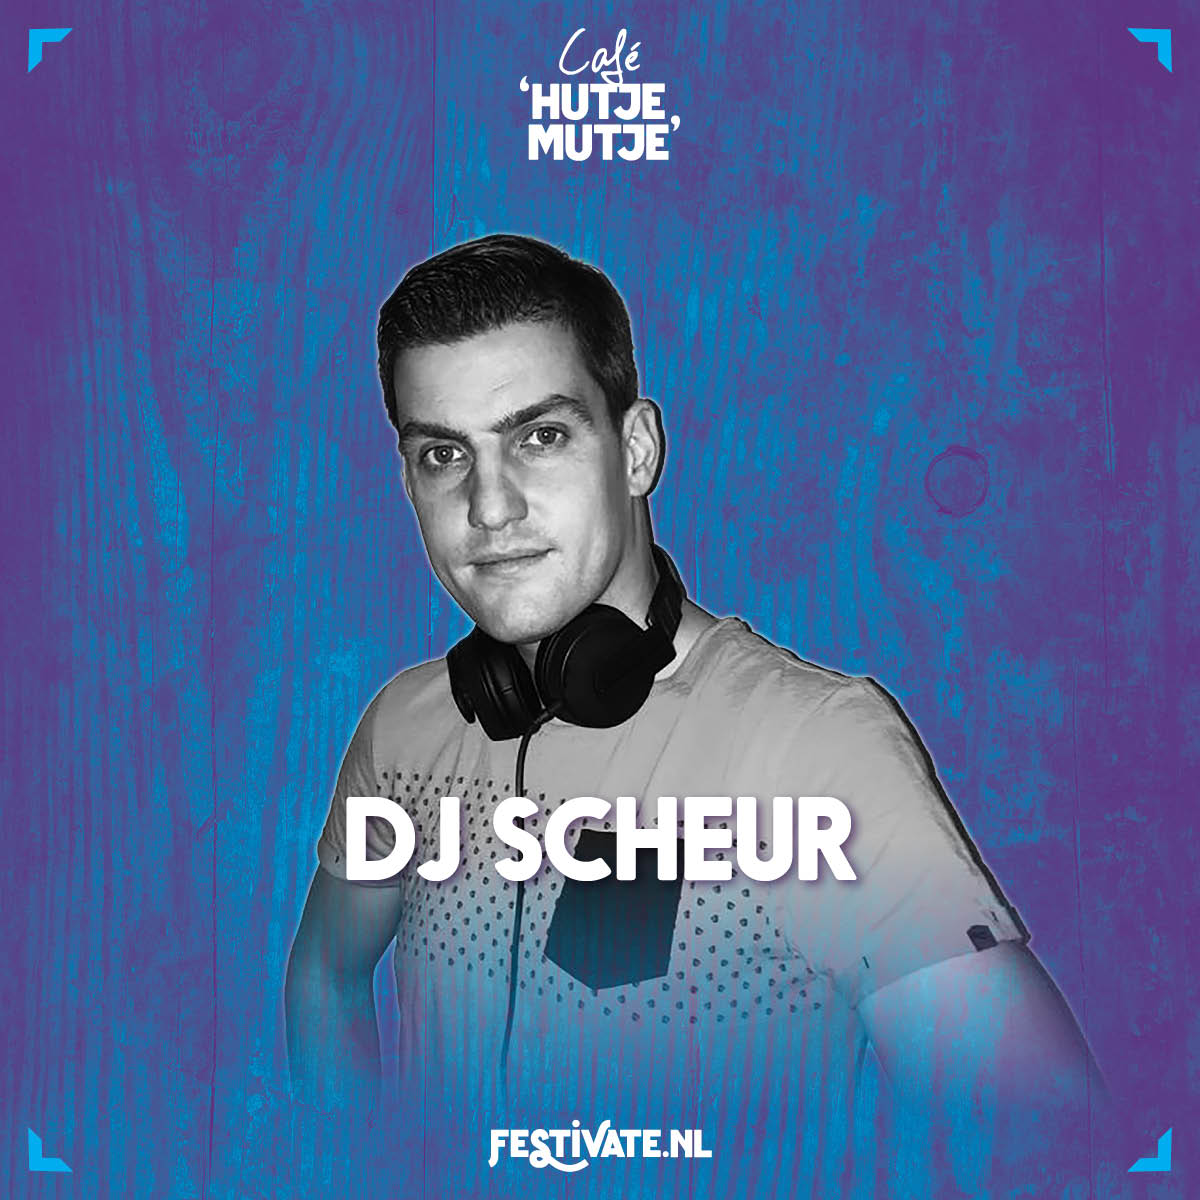 WEB_2018_FTV_Line_Up_Afb_DJ_Scheur